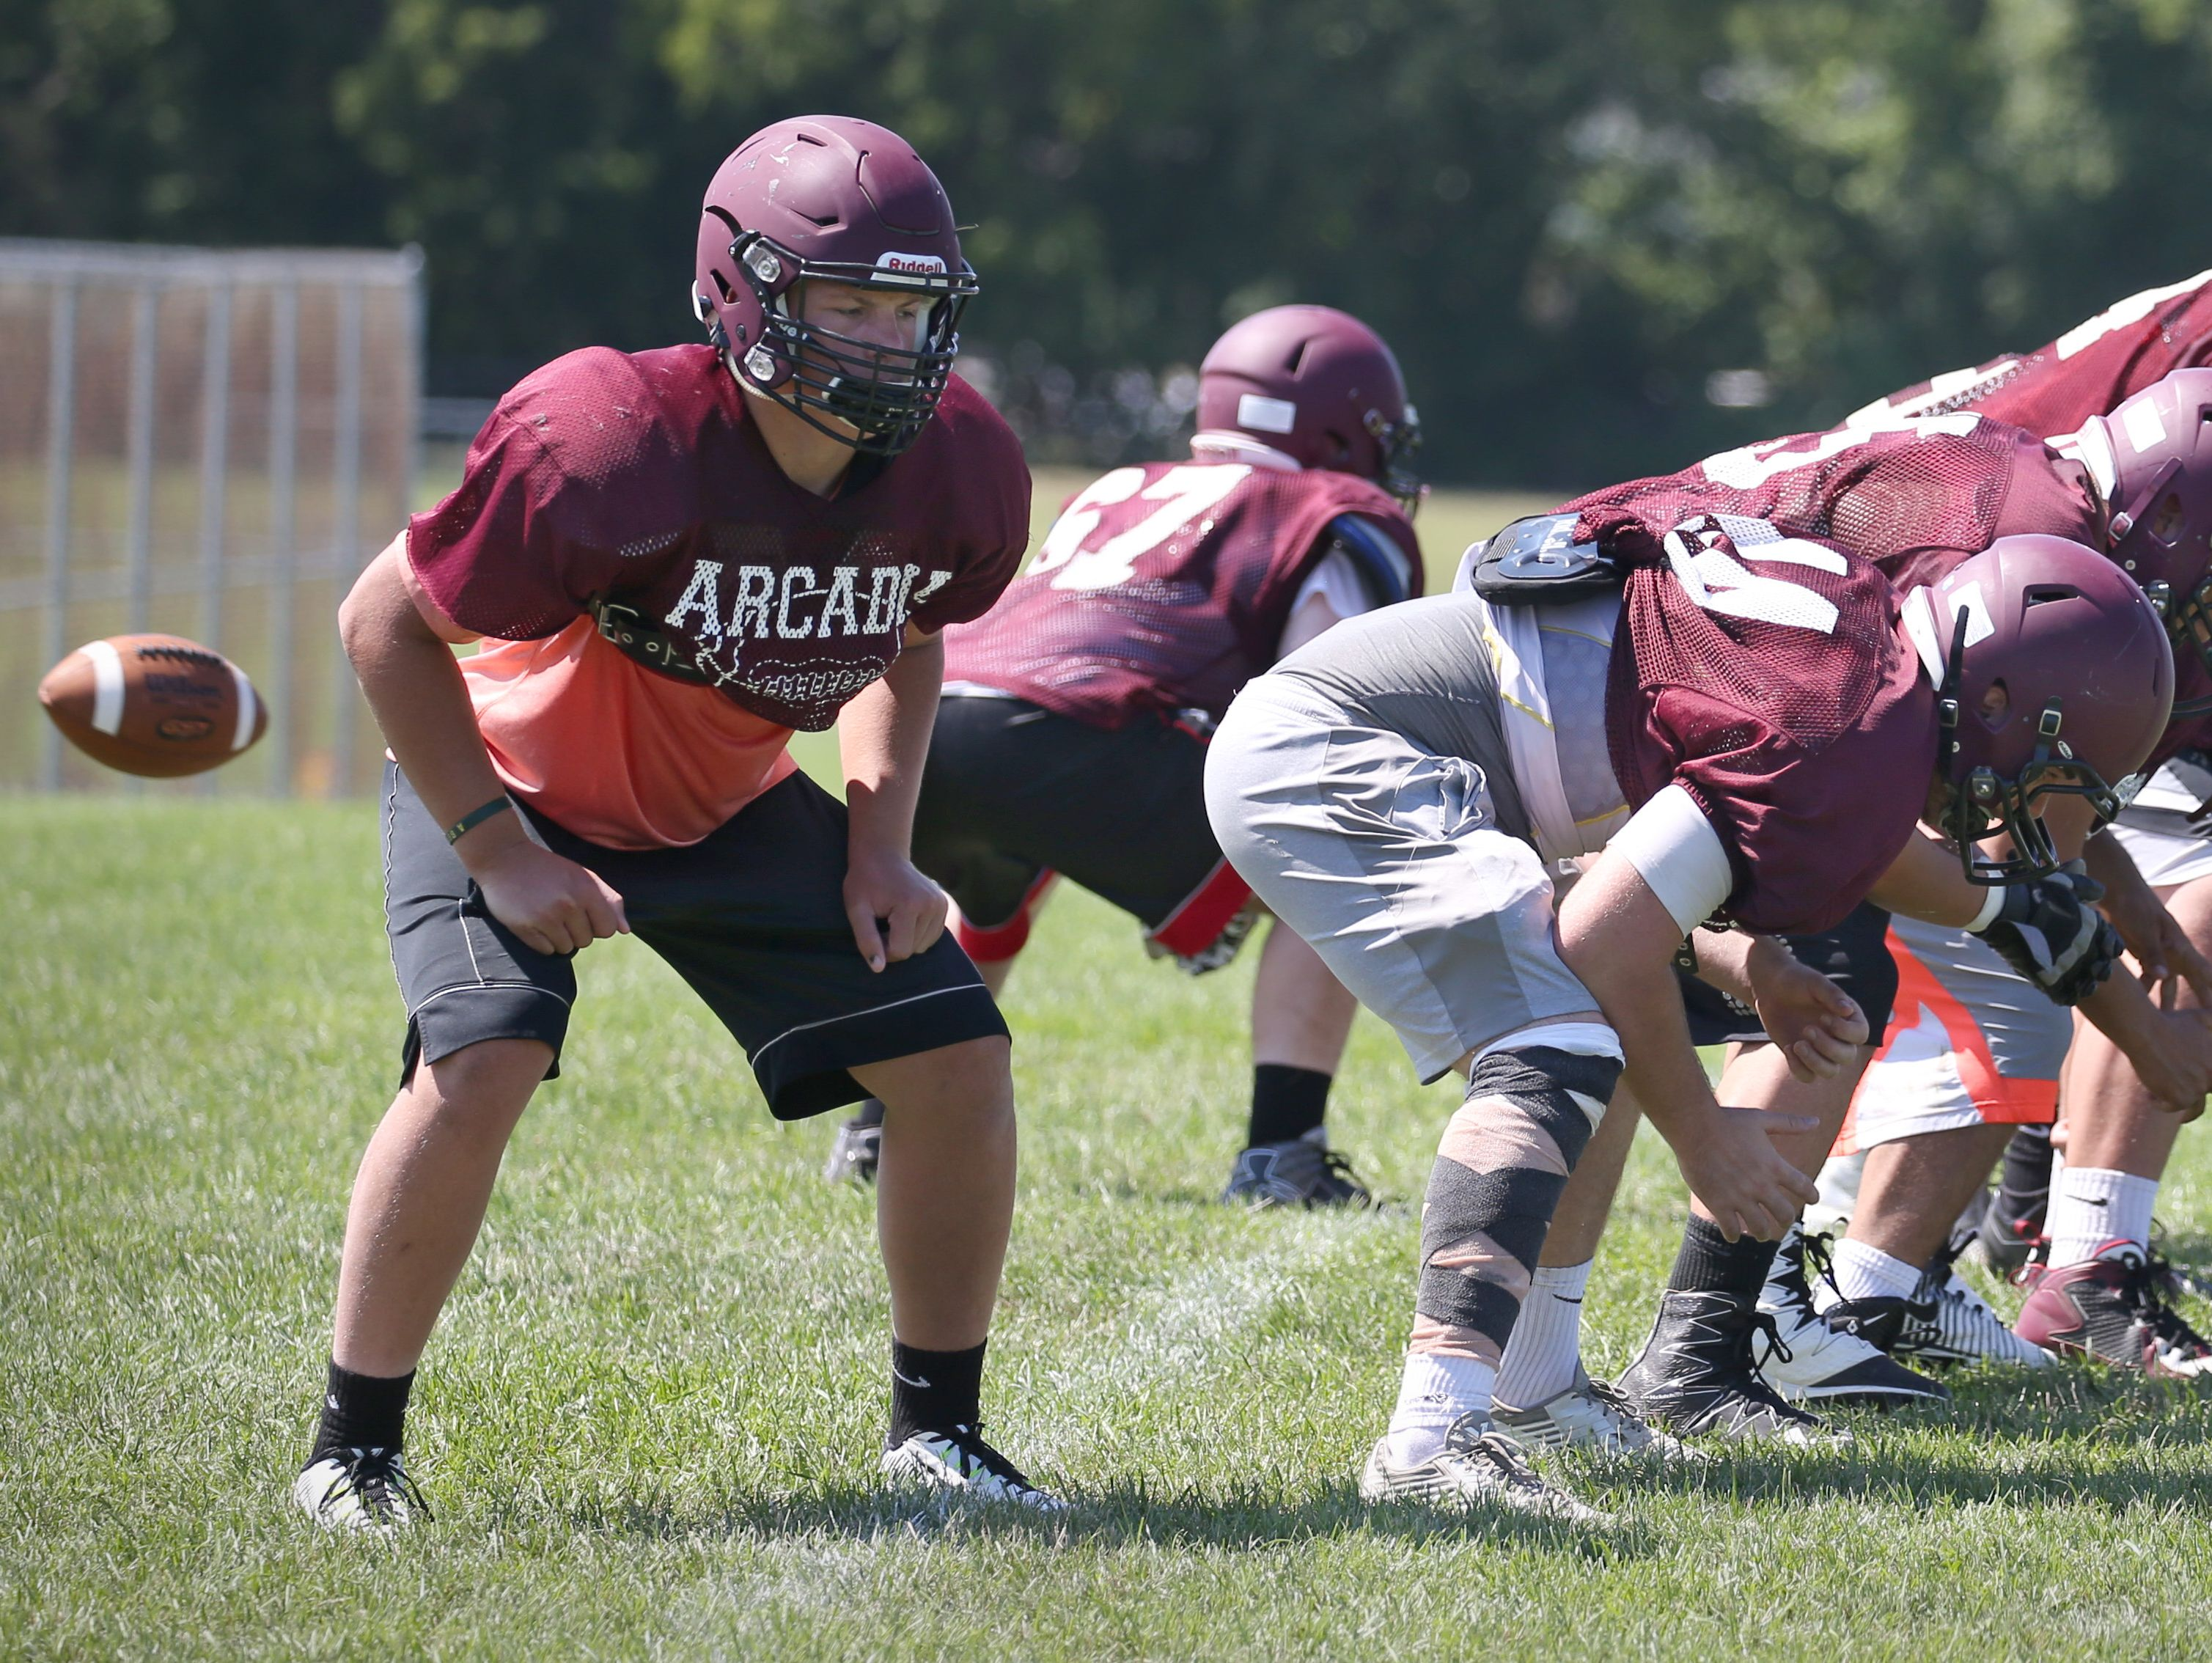 Greece Arcadia fullback and linebacker Nick St. Clair, far left, holds the end of the line during punt formations during their practice Thursday, Aug. 18, 2016 at the high school in Greece.